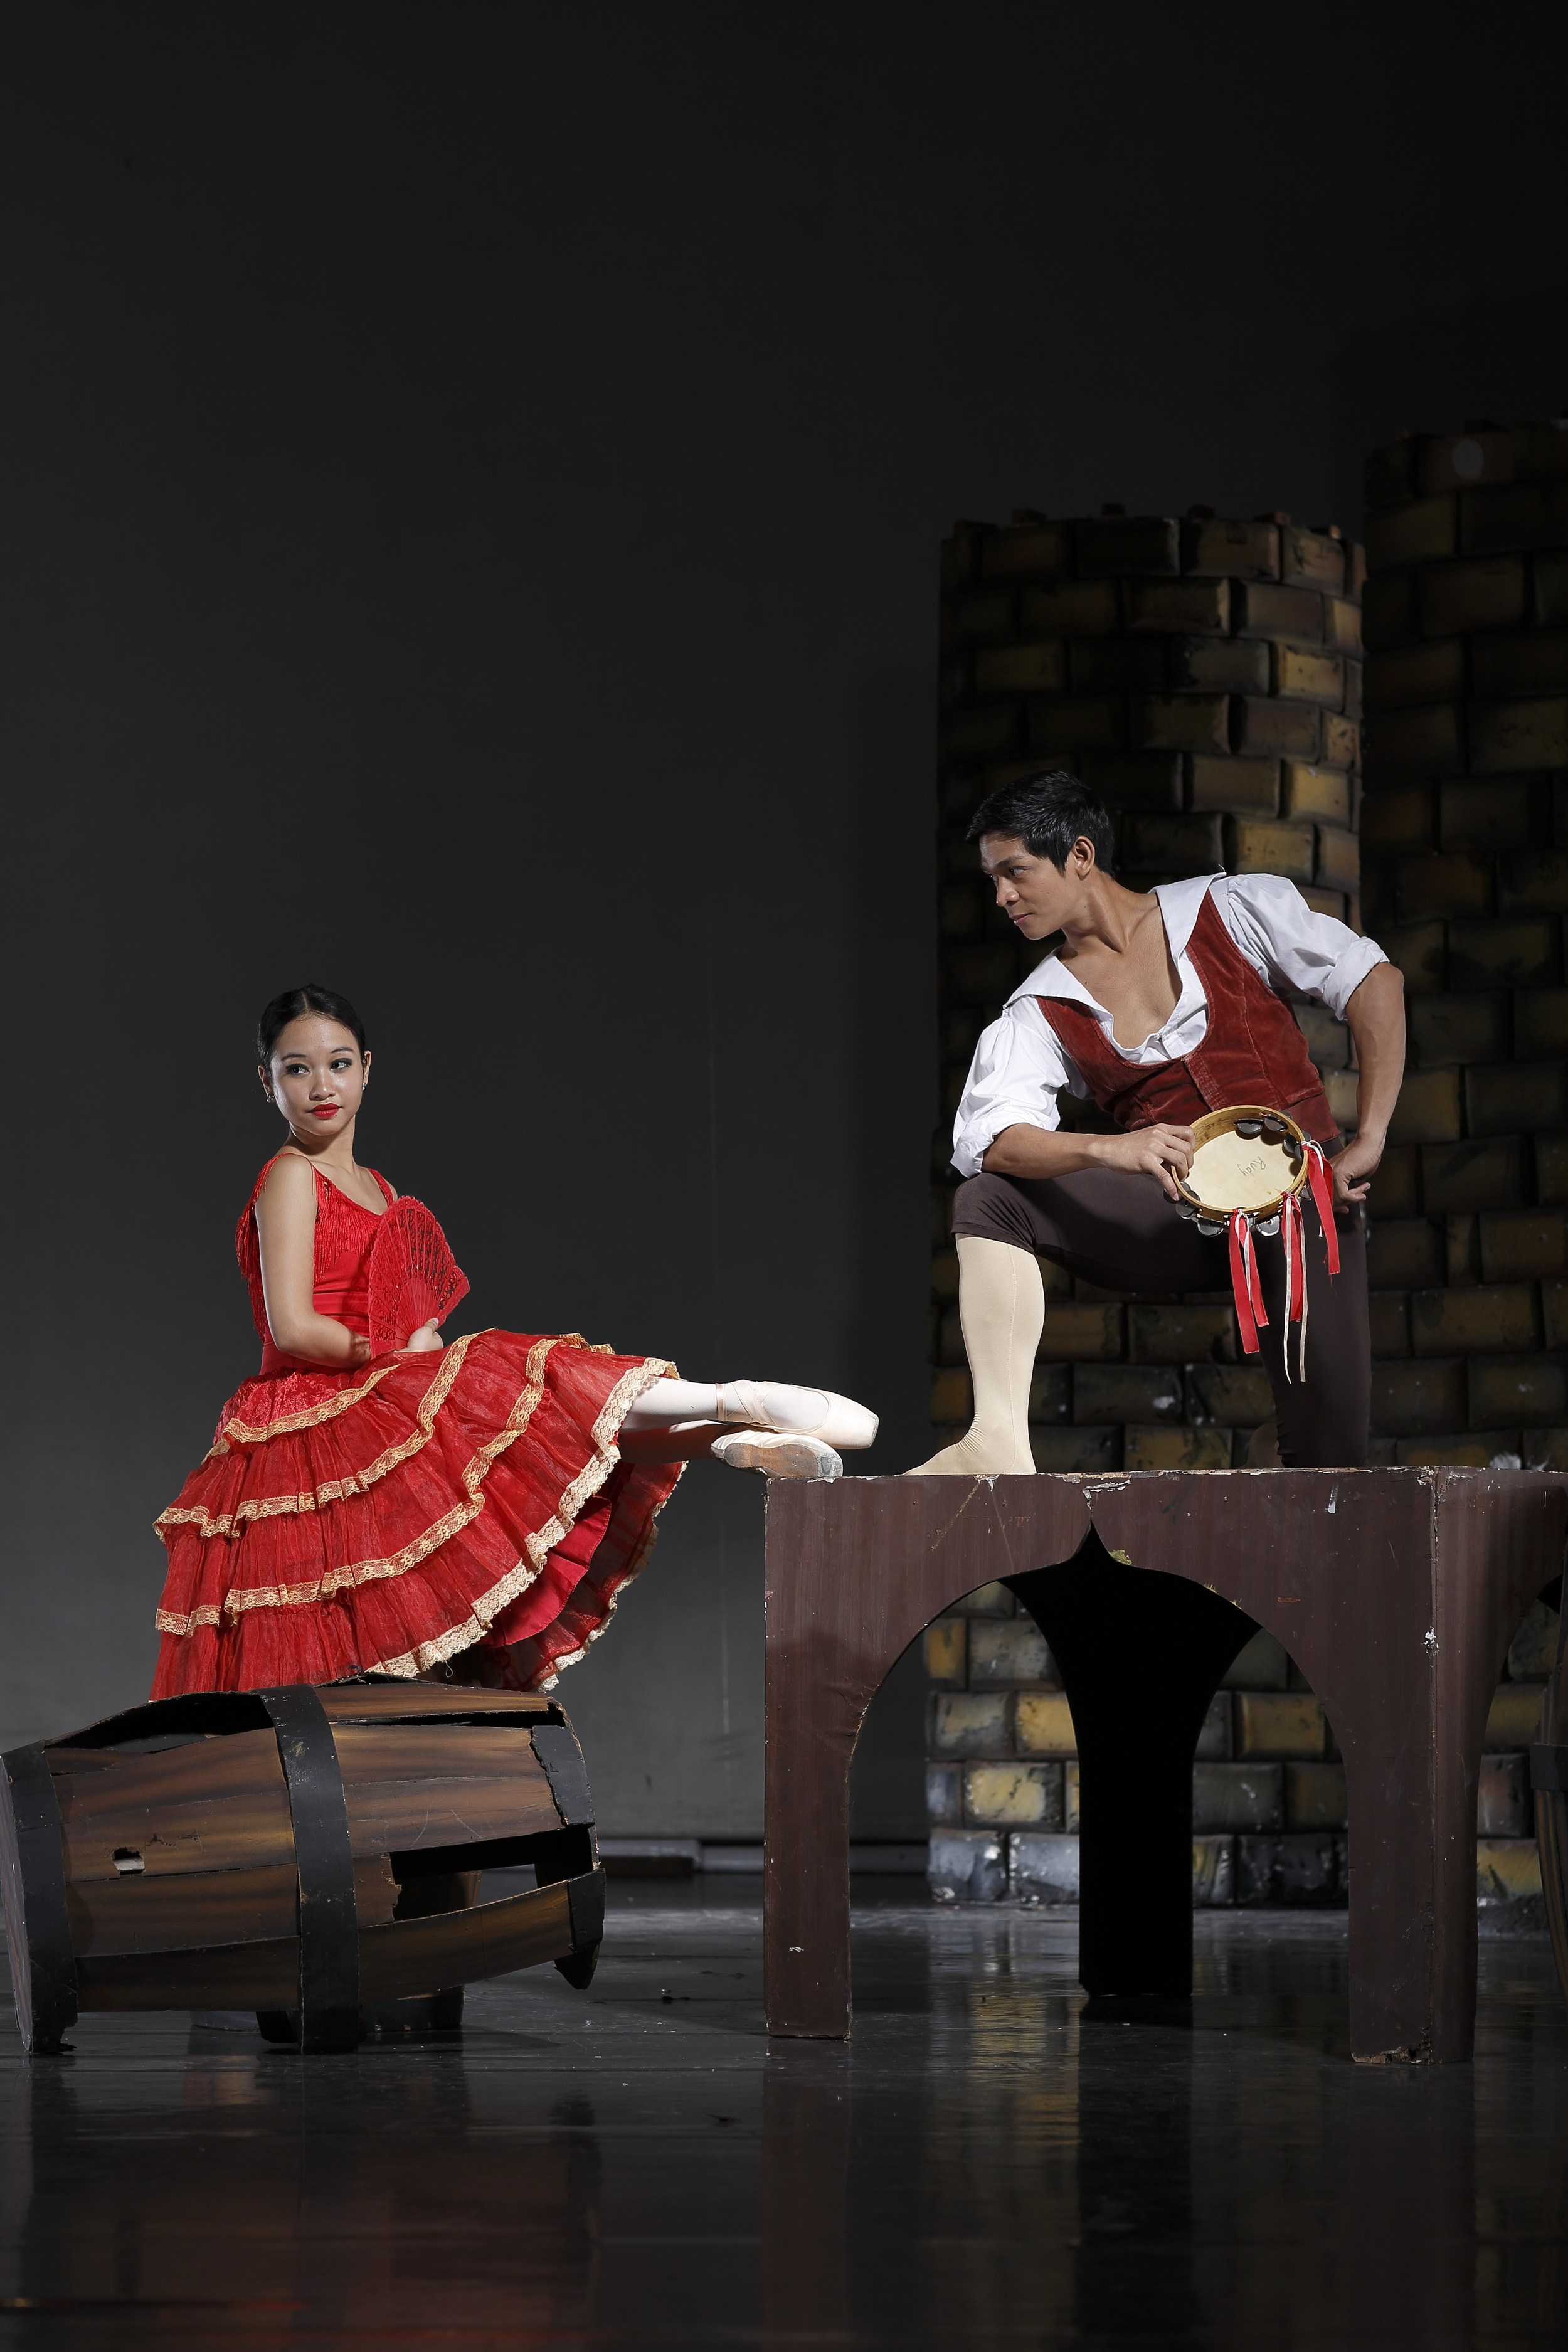 Principal dancer Gerardo Francisco and soloist Pia Dames are set to take on ballet's most iconic characters - Basilio and Kitri of  Don Quixote .